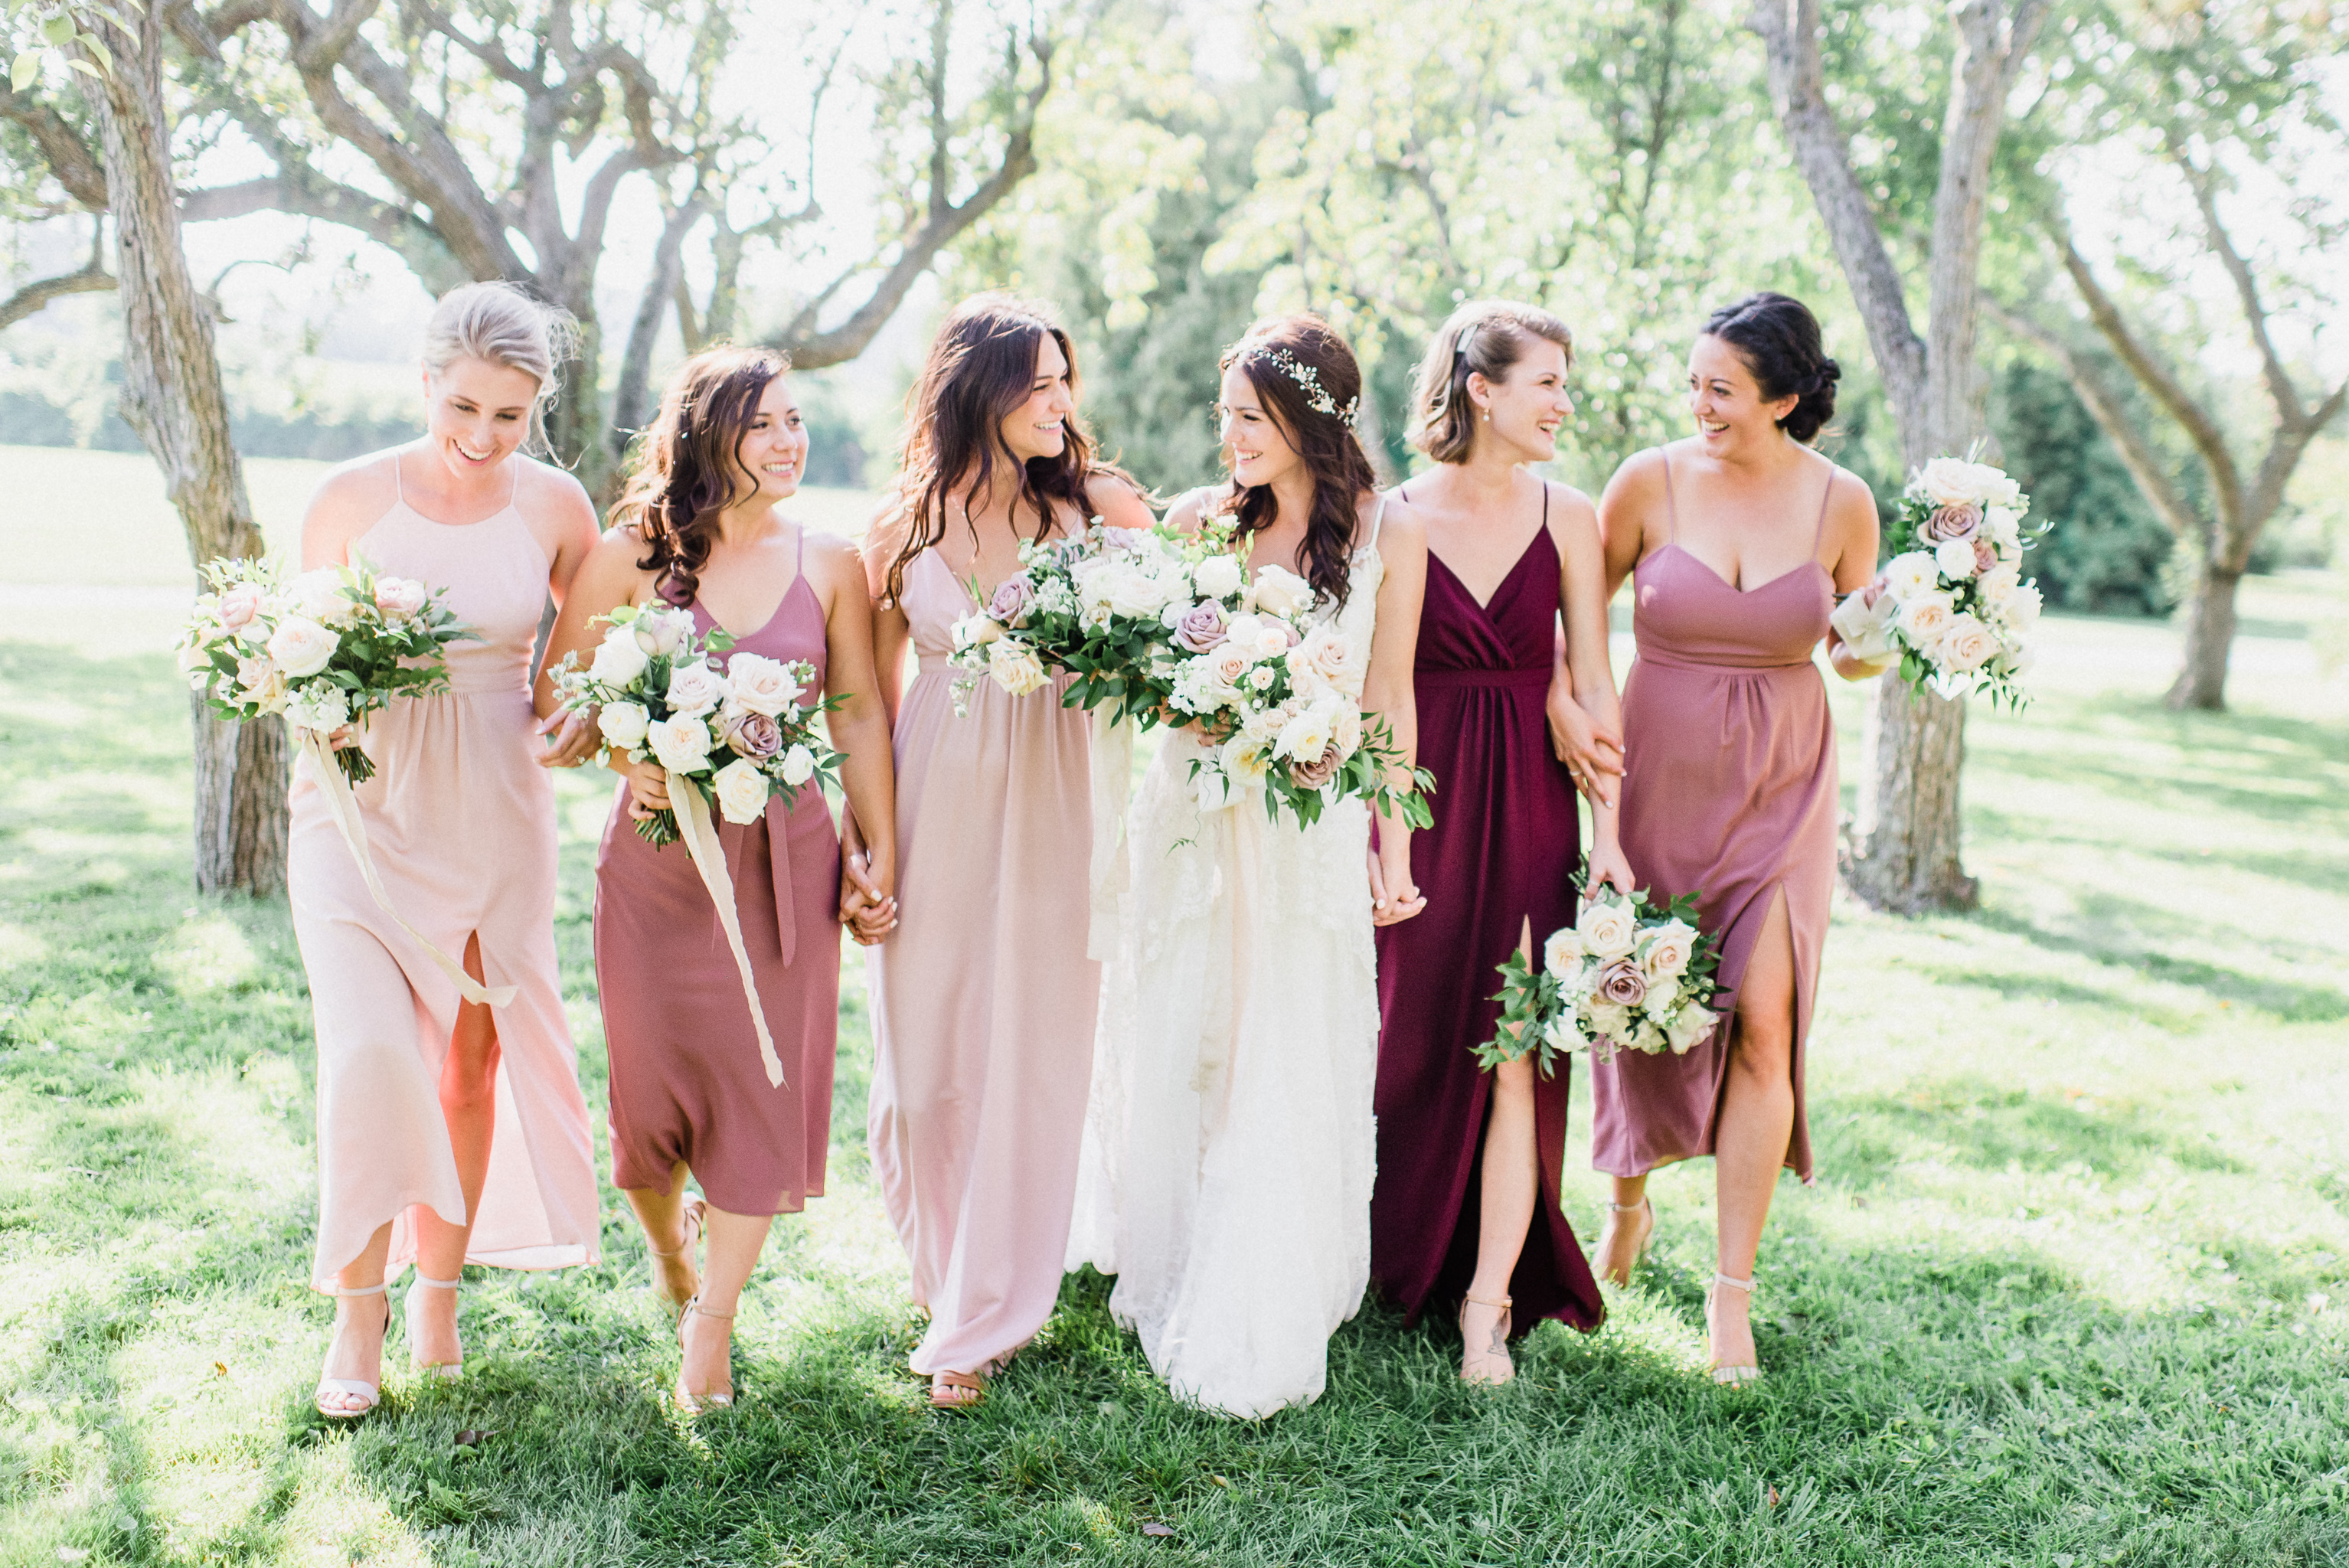 Midi Length Park & Fifth Co bridesmaids dresses by Jenn Kavanagh Photography